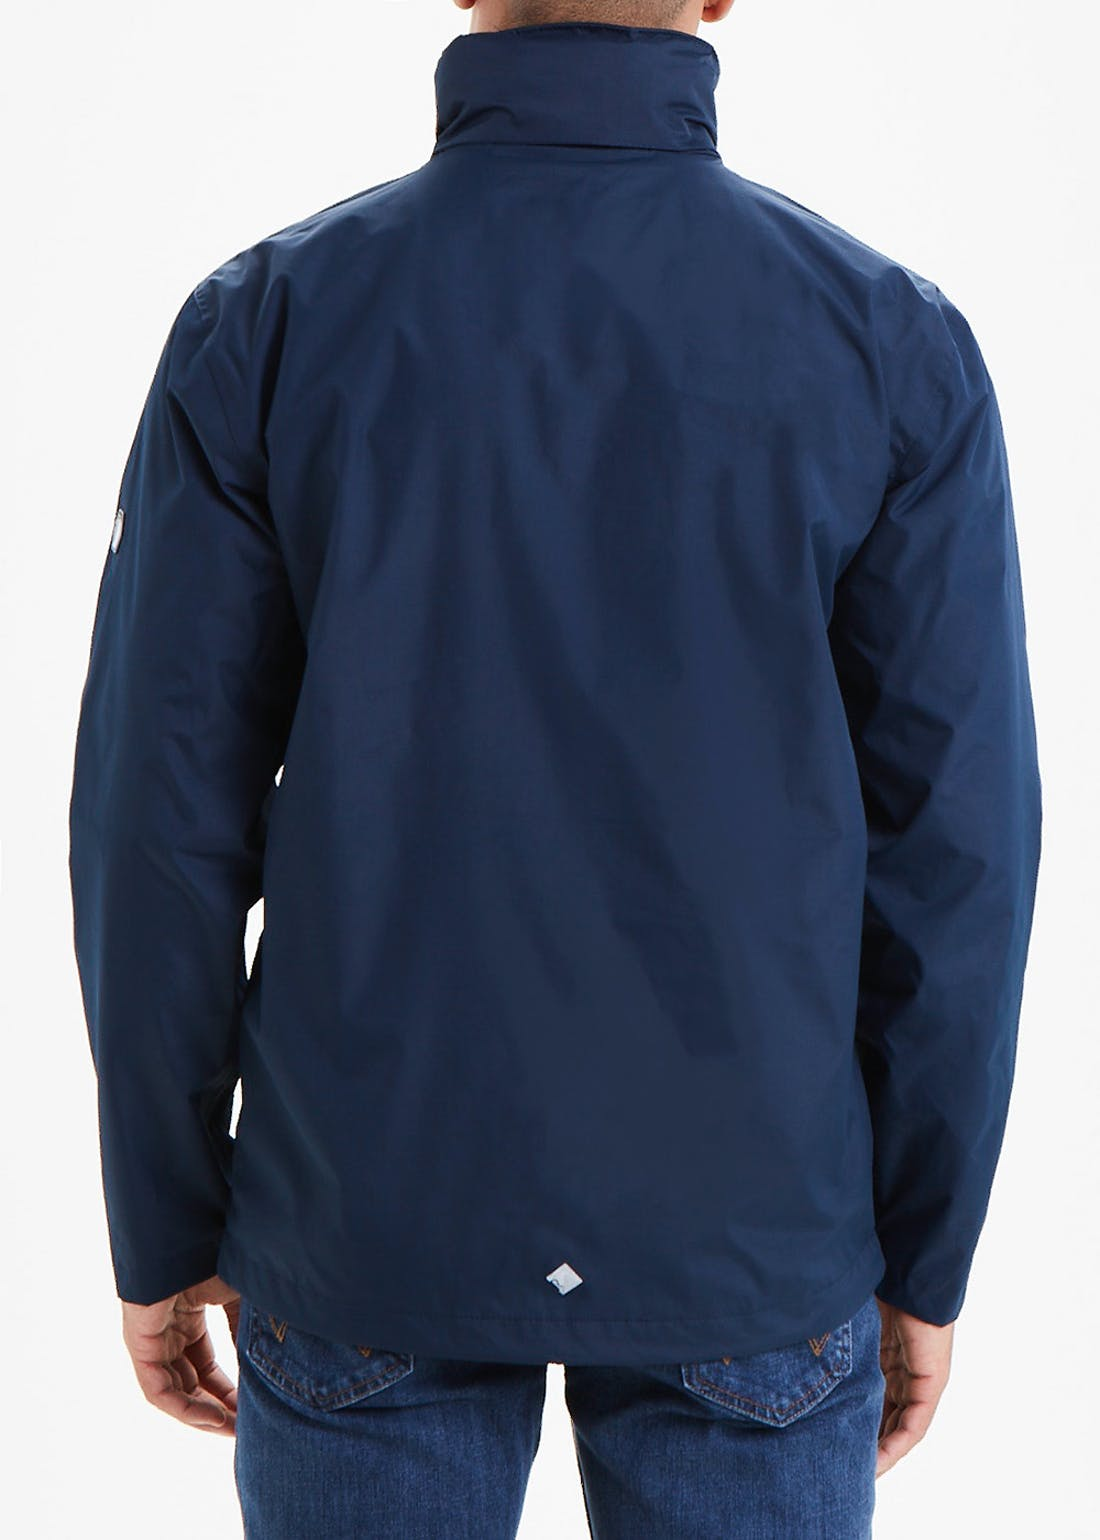 Regatta Navy Matt Waterproof Jacket